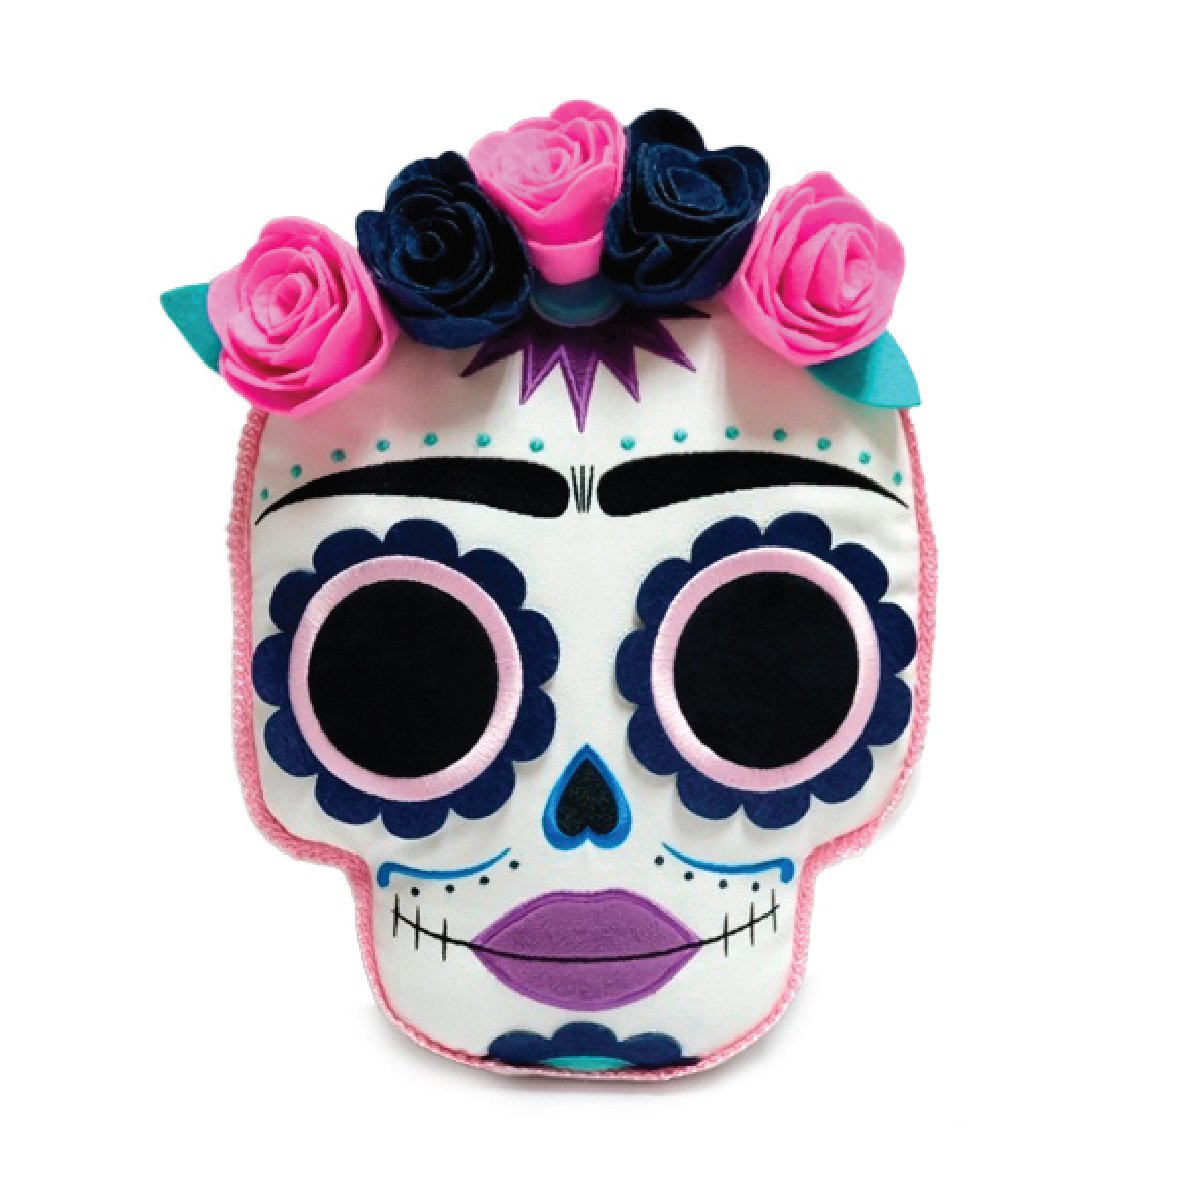 "Frida Kahlo Day of the Dead 12"" Plush Pillow - Noche Edition (PRE-ORDER) - Kidrobot - Designer Art Toys"